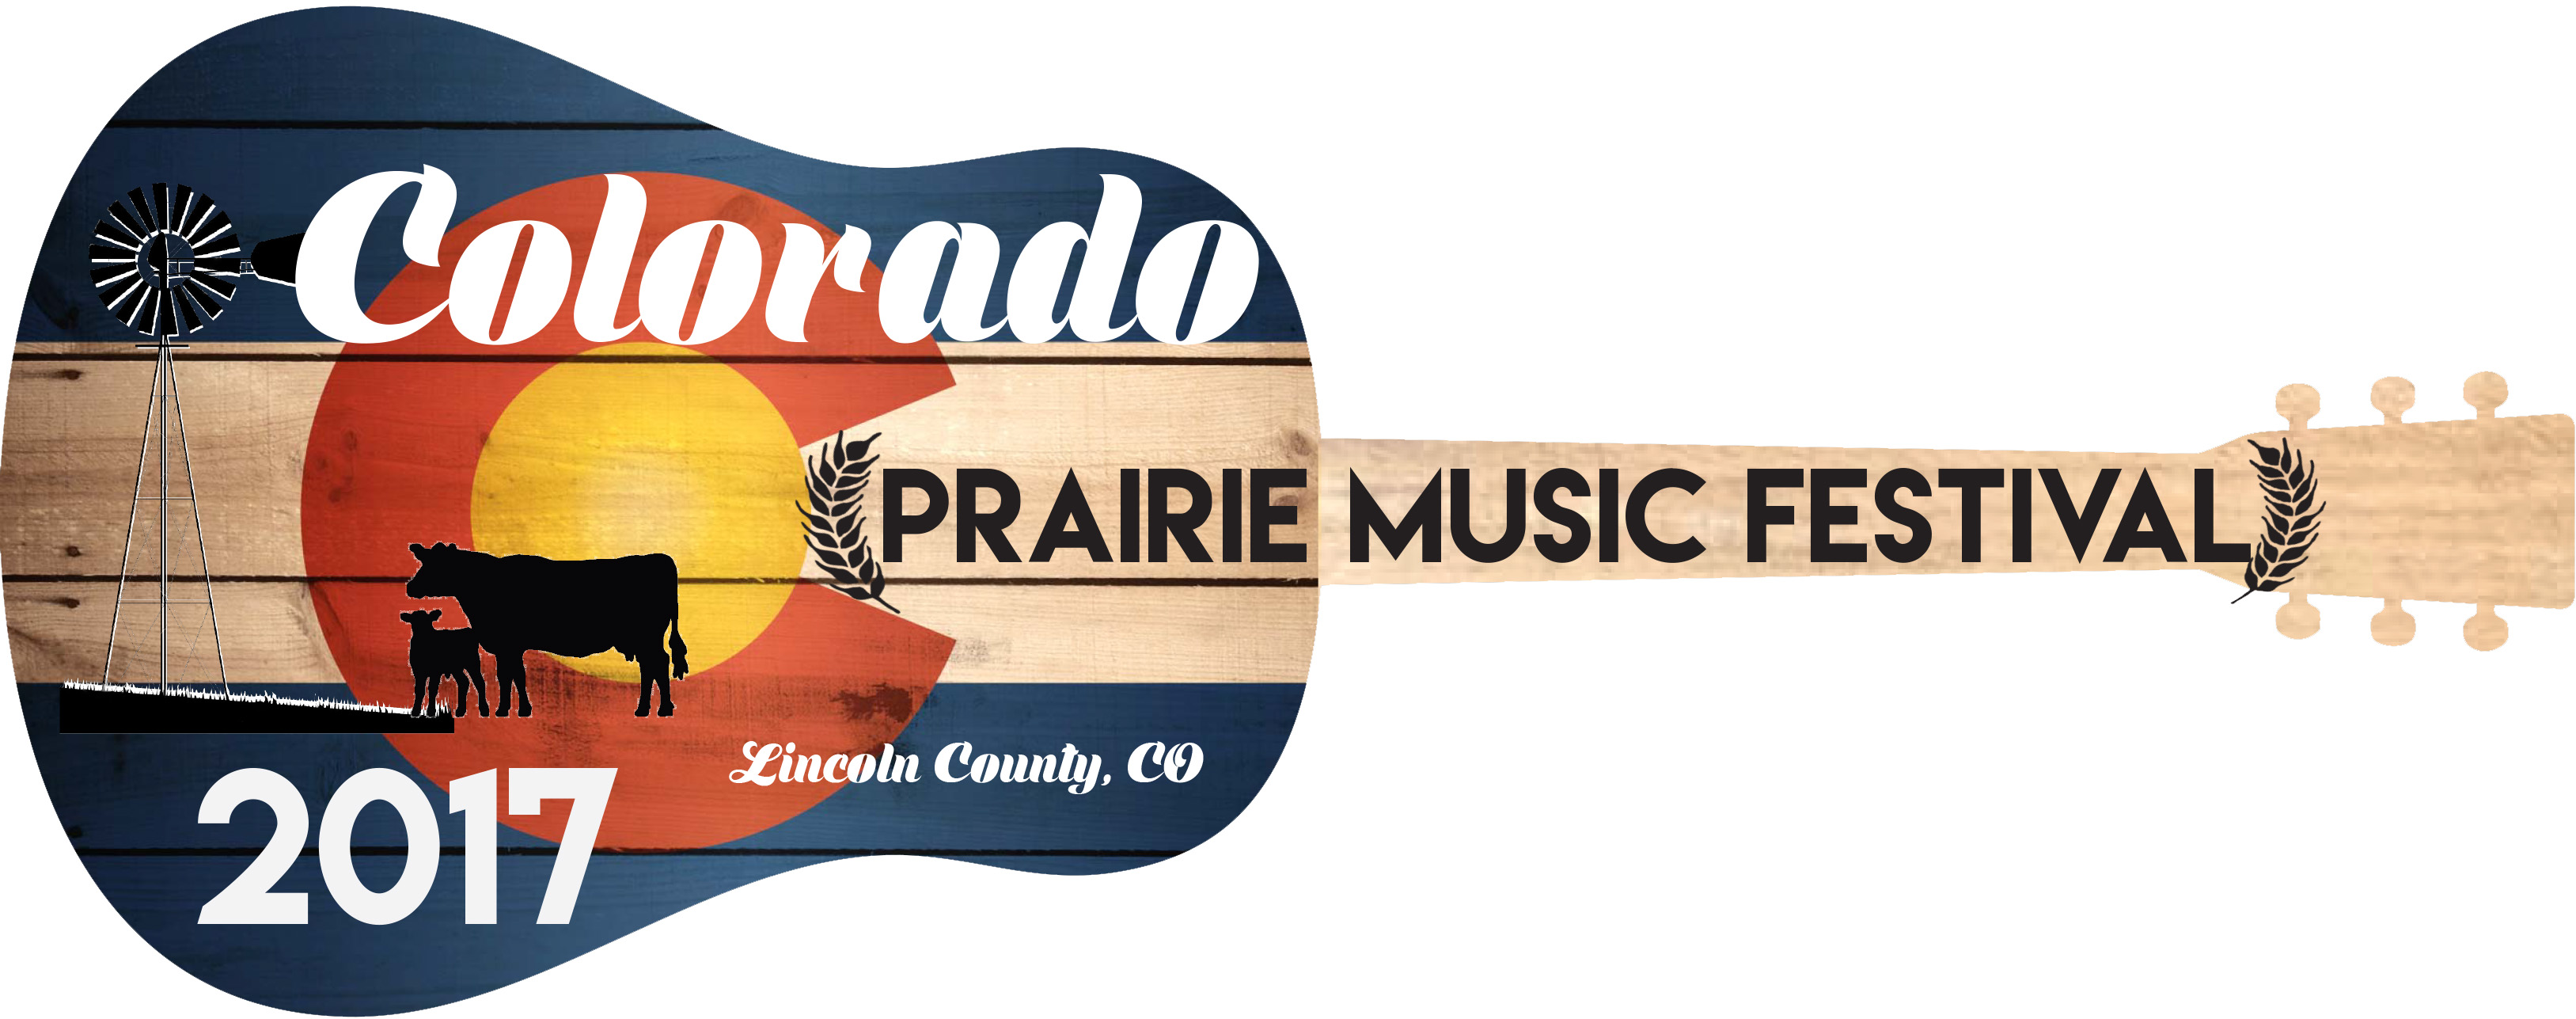 Colorado Prairie Music Festival Guitar 2017